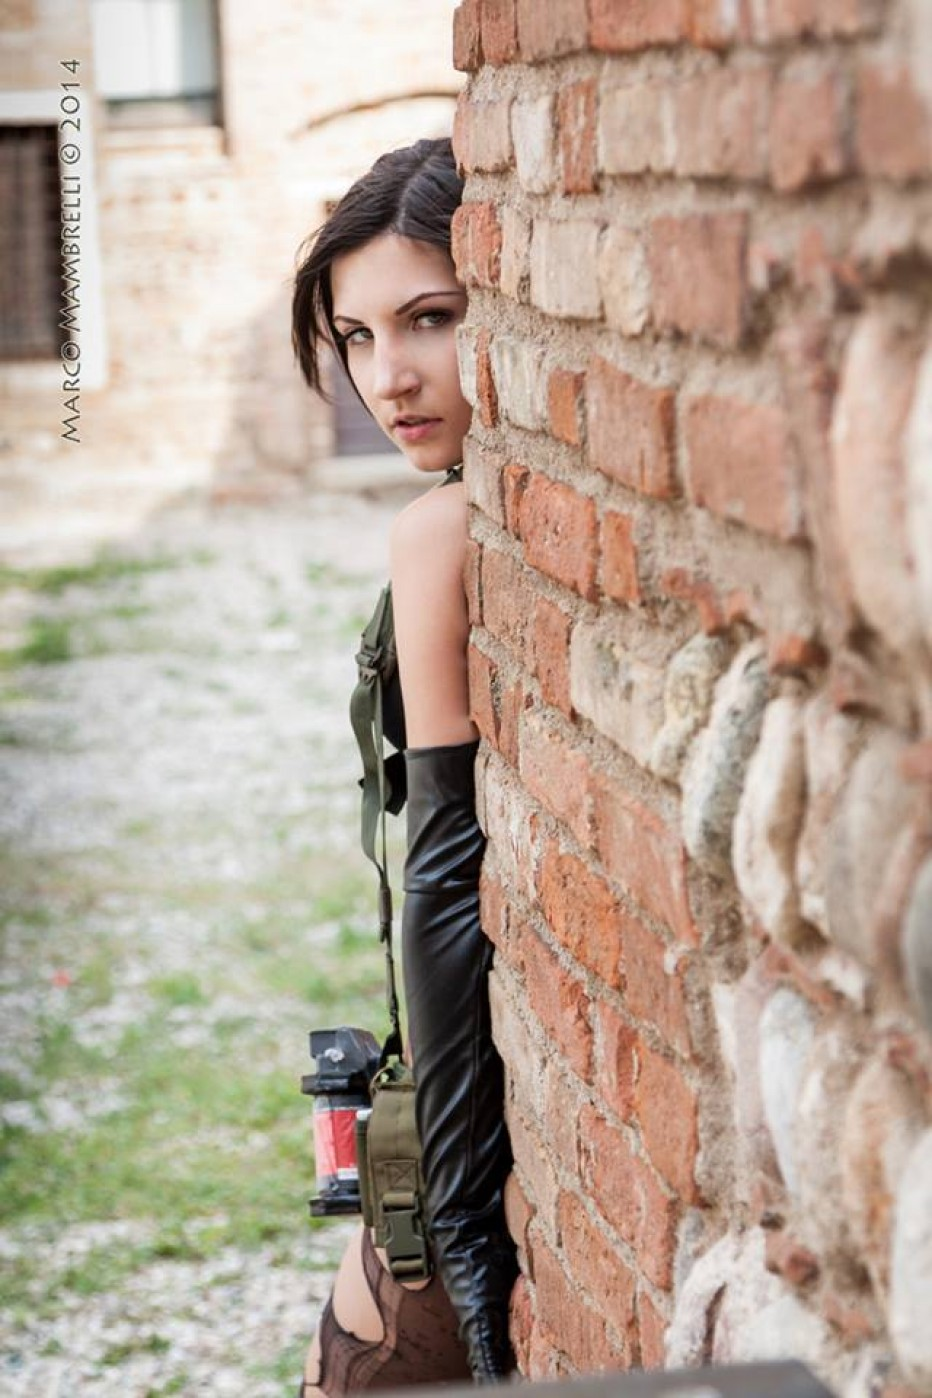 quiet_mgs_v_cosplay_by_lucyrose3-d7rqlb8.jpg